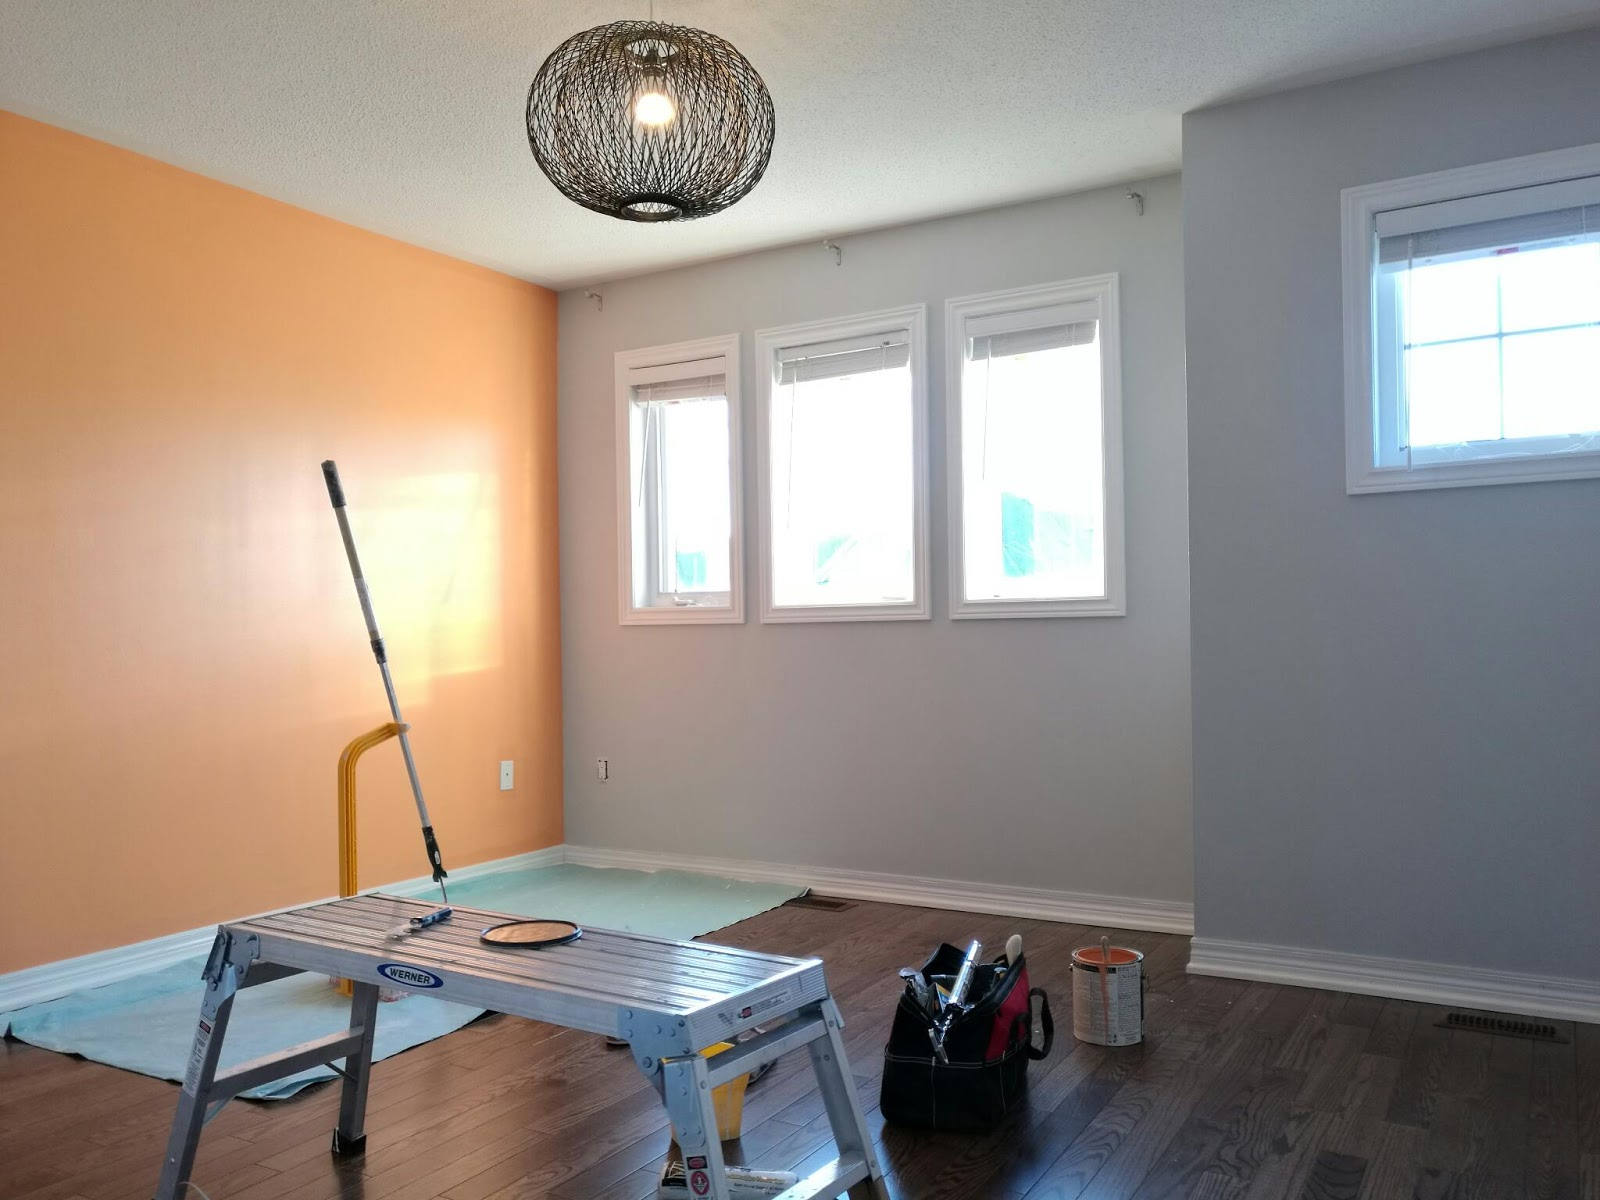 Mi Painting and Wallpaper 416 807 0048 Sherwin Williams Inventive